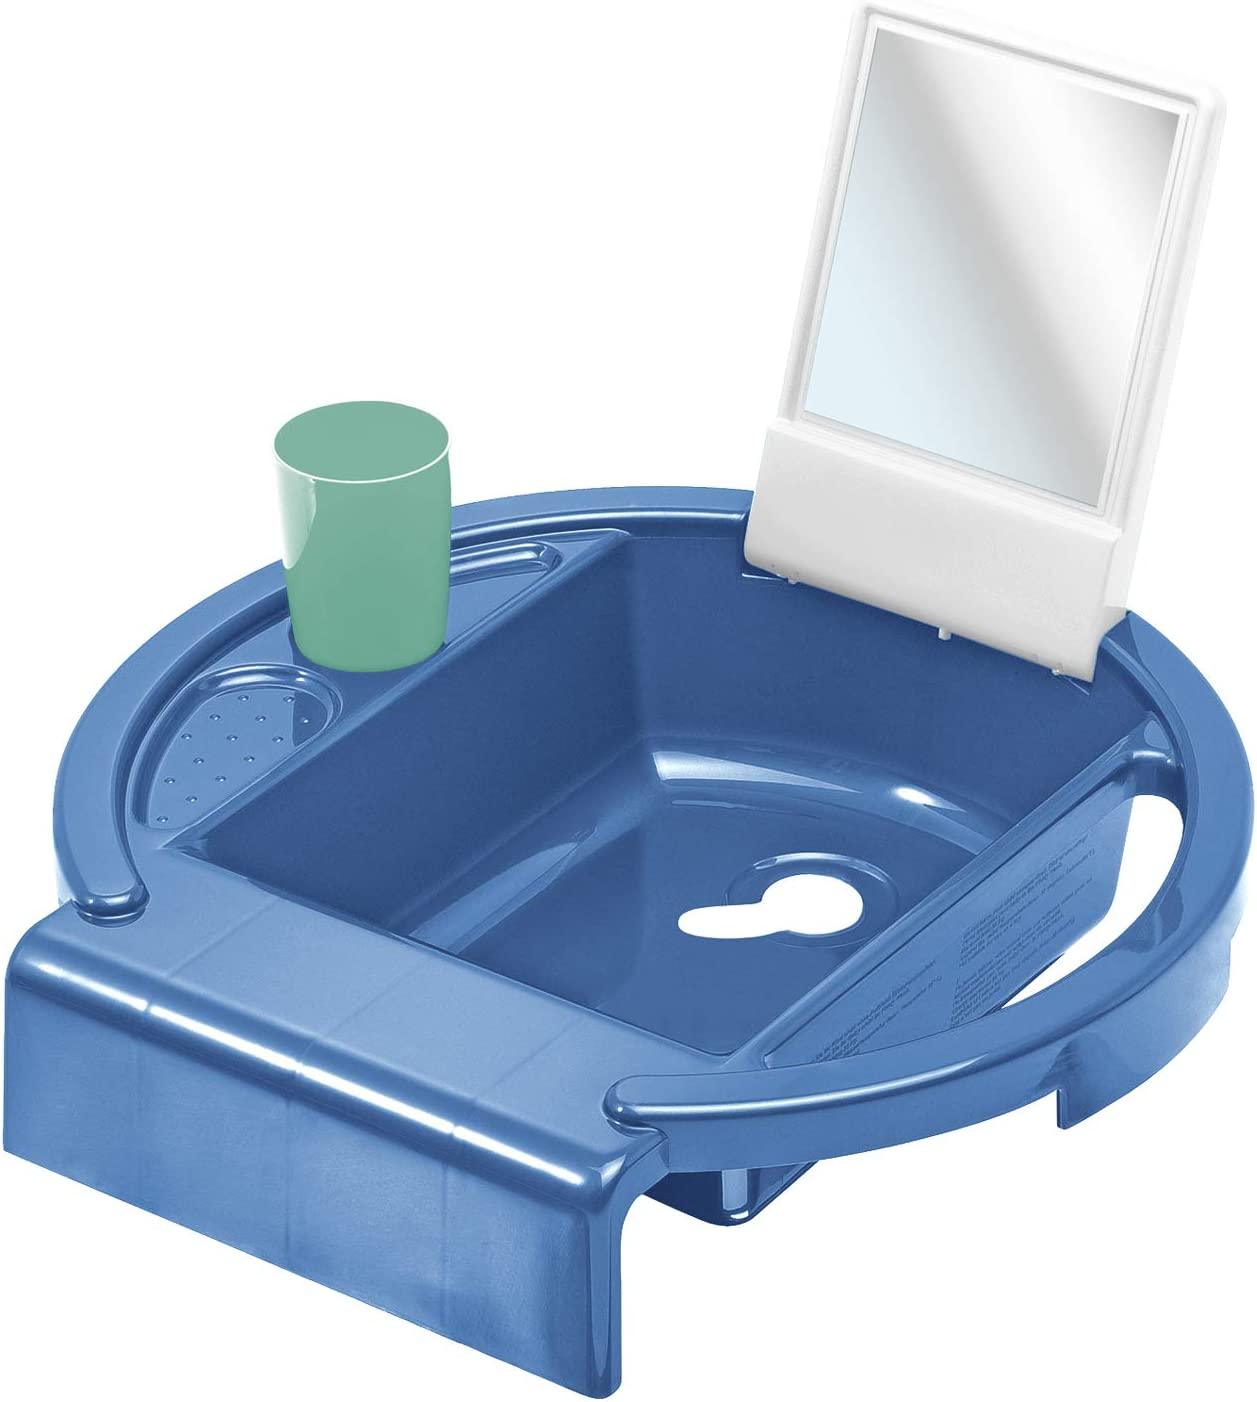 Rotho Babydesign Kiddy Wash Childrens Washbasin 38.7 x 38.2 x 10 cm Cool Blue Blue To be Attached to the Edge of the Bathtub 20034 0315 01